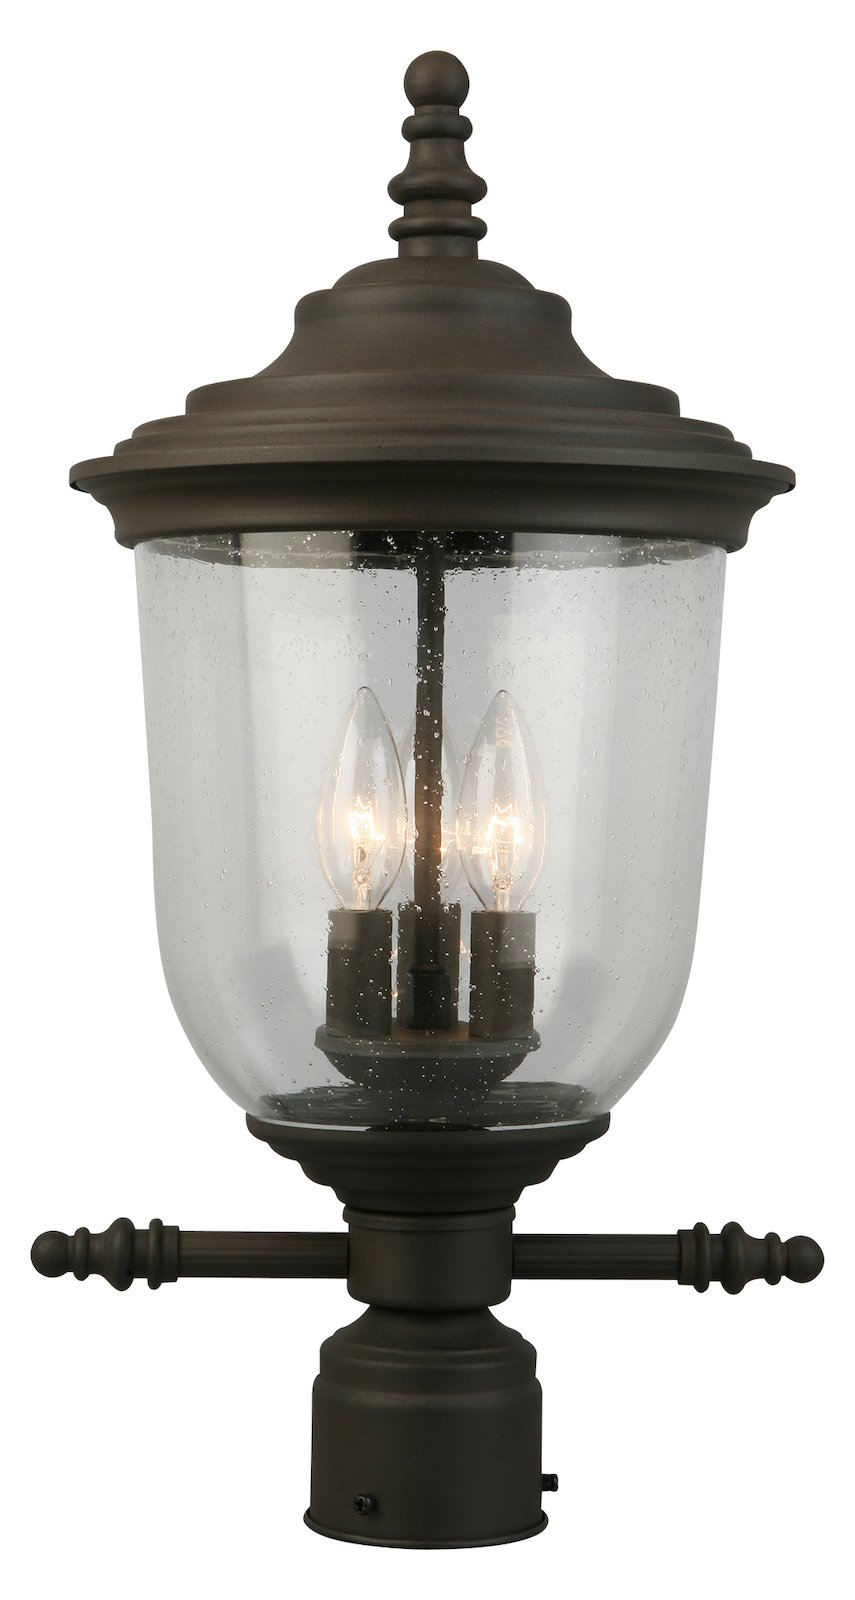 3X60W Outdoor Post Light W/ Matte Bronze Finish & Clear Seeded Glass